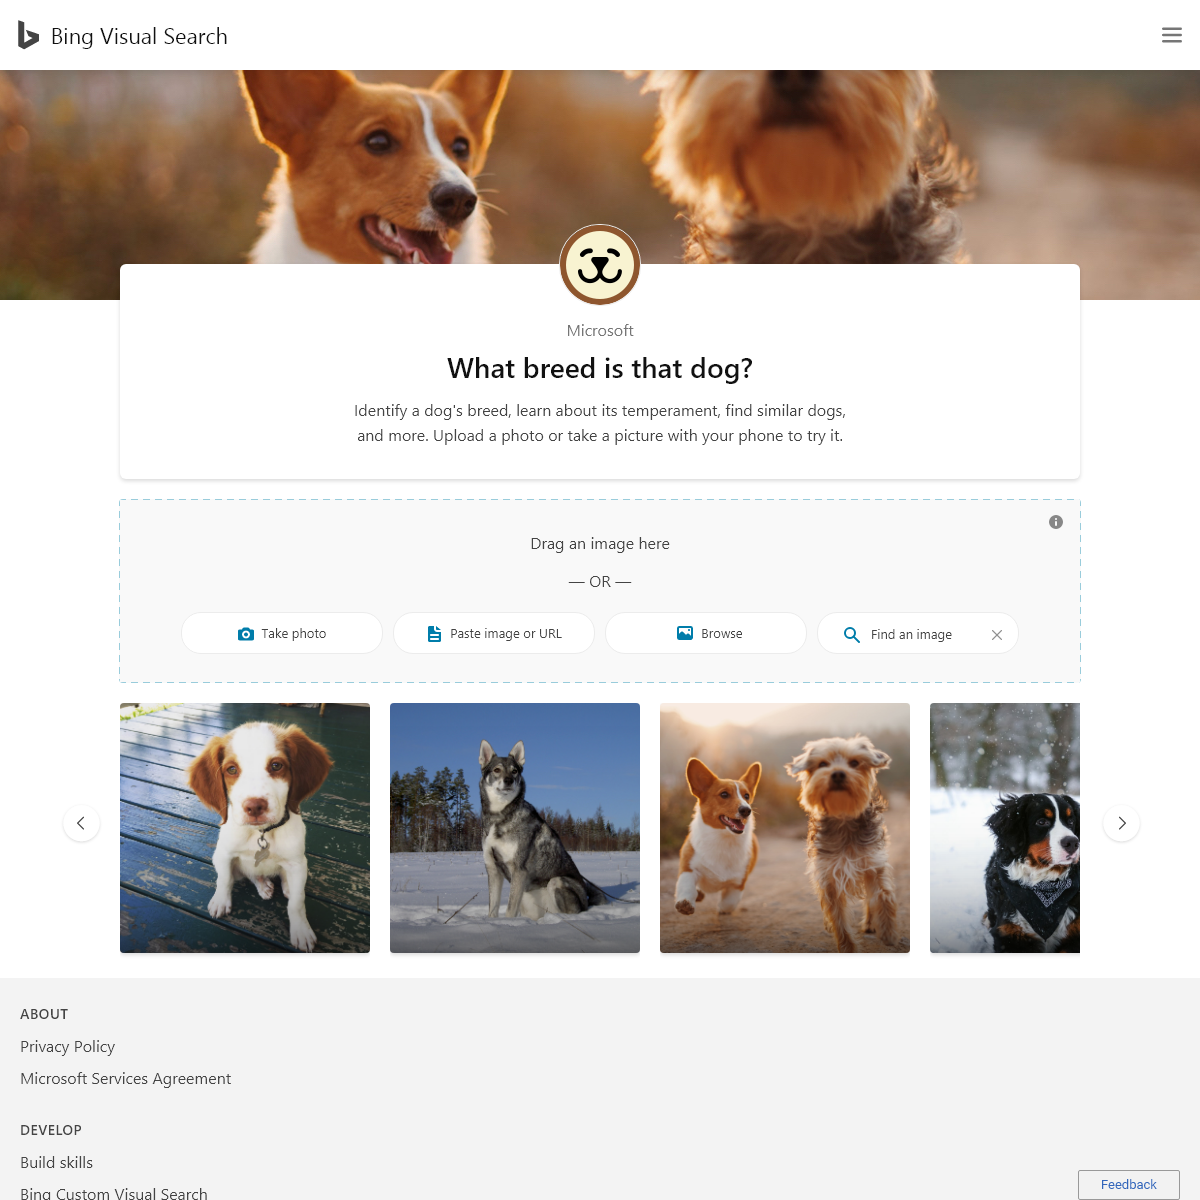 What breed is that dog- - Bing Visual Search